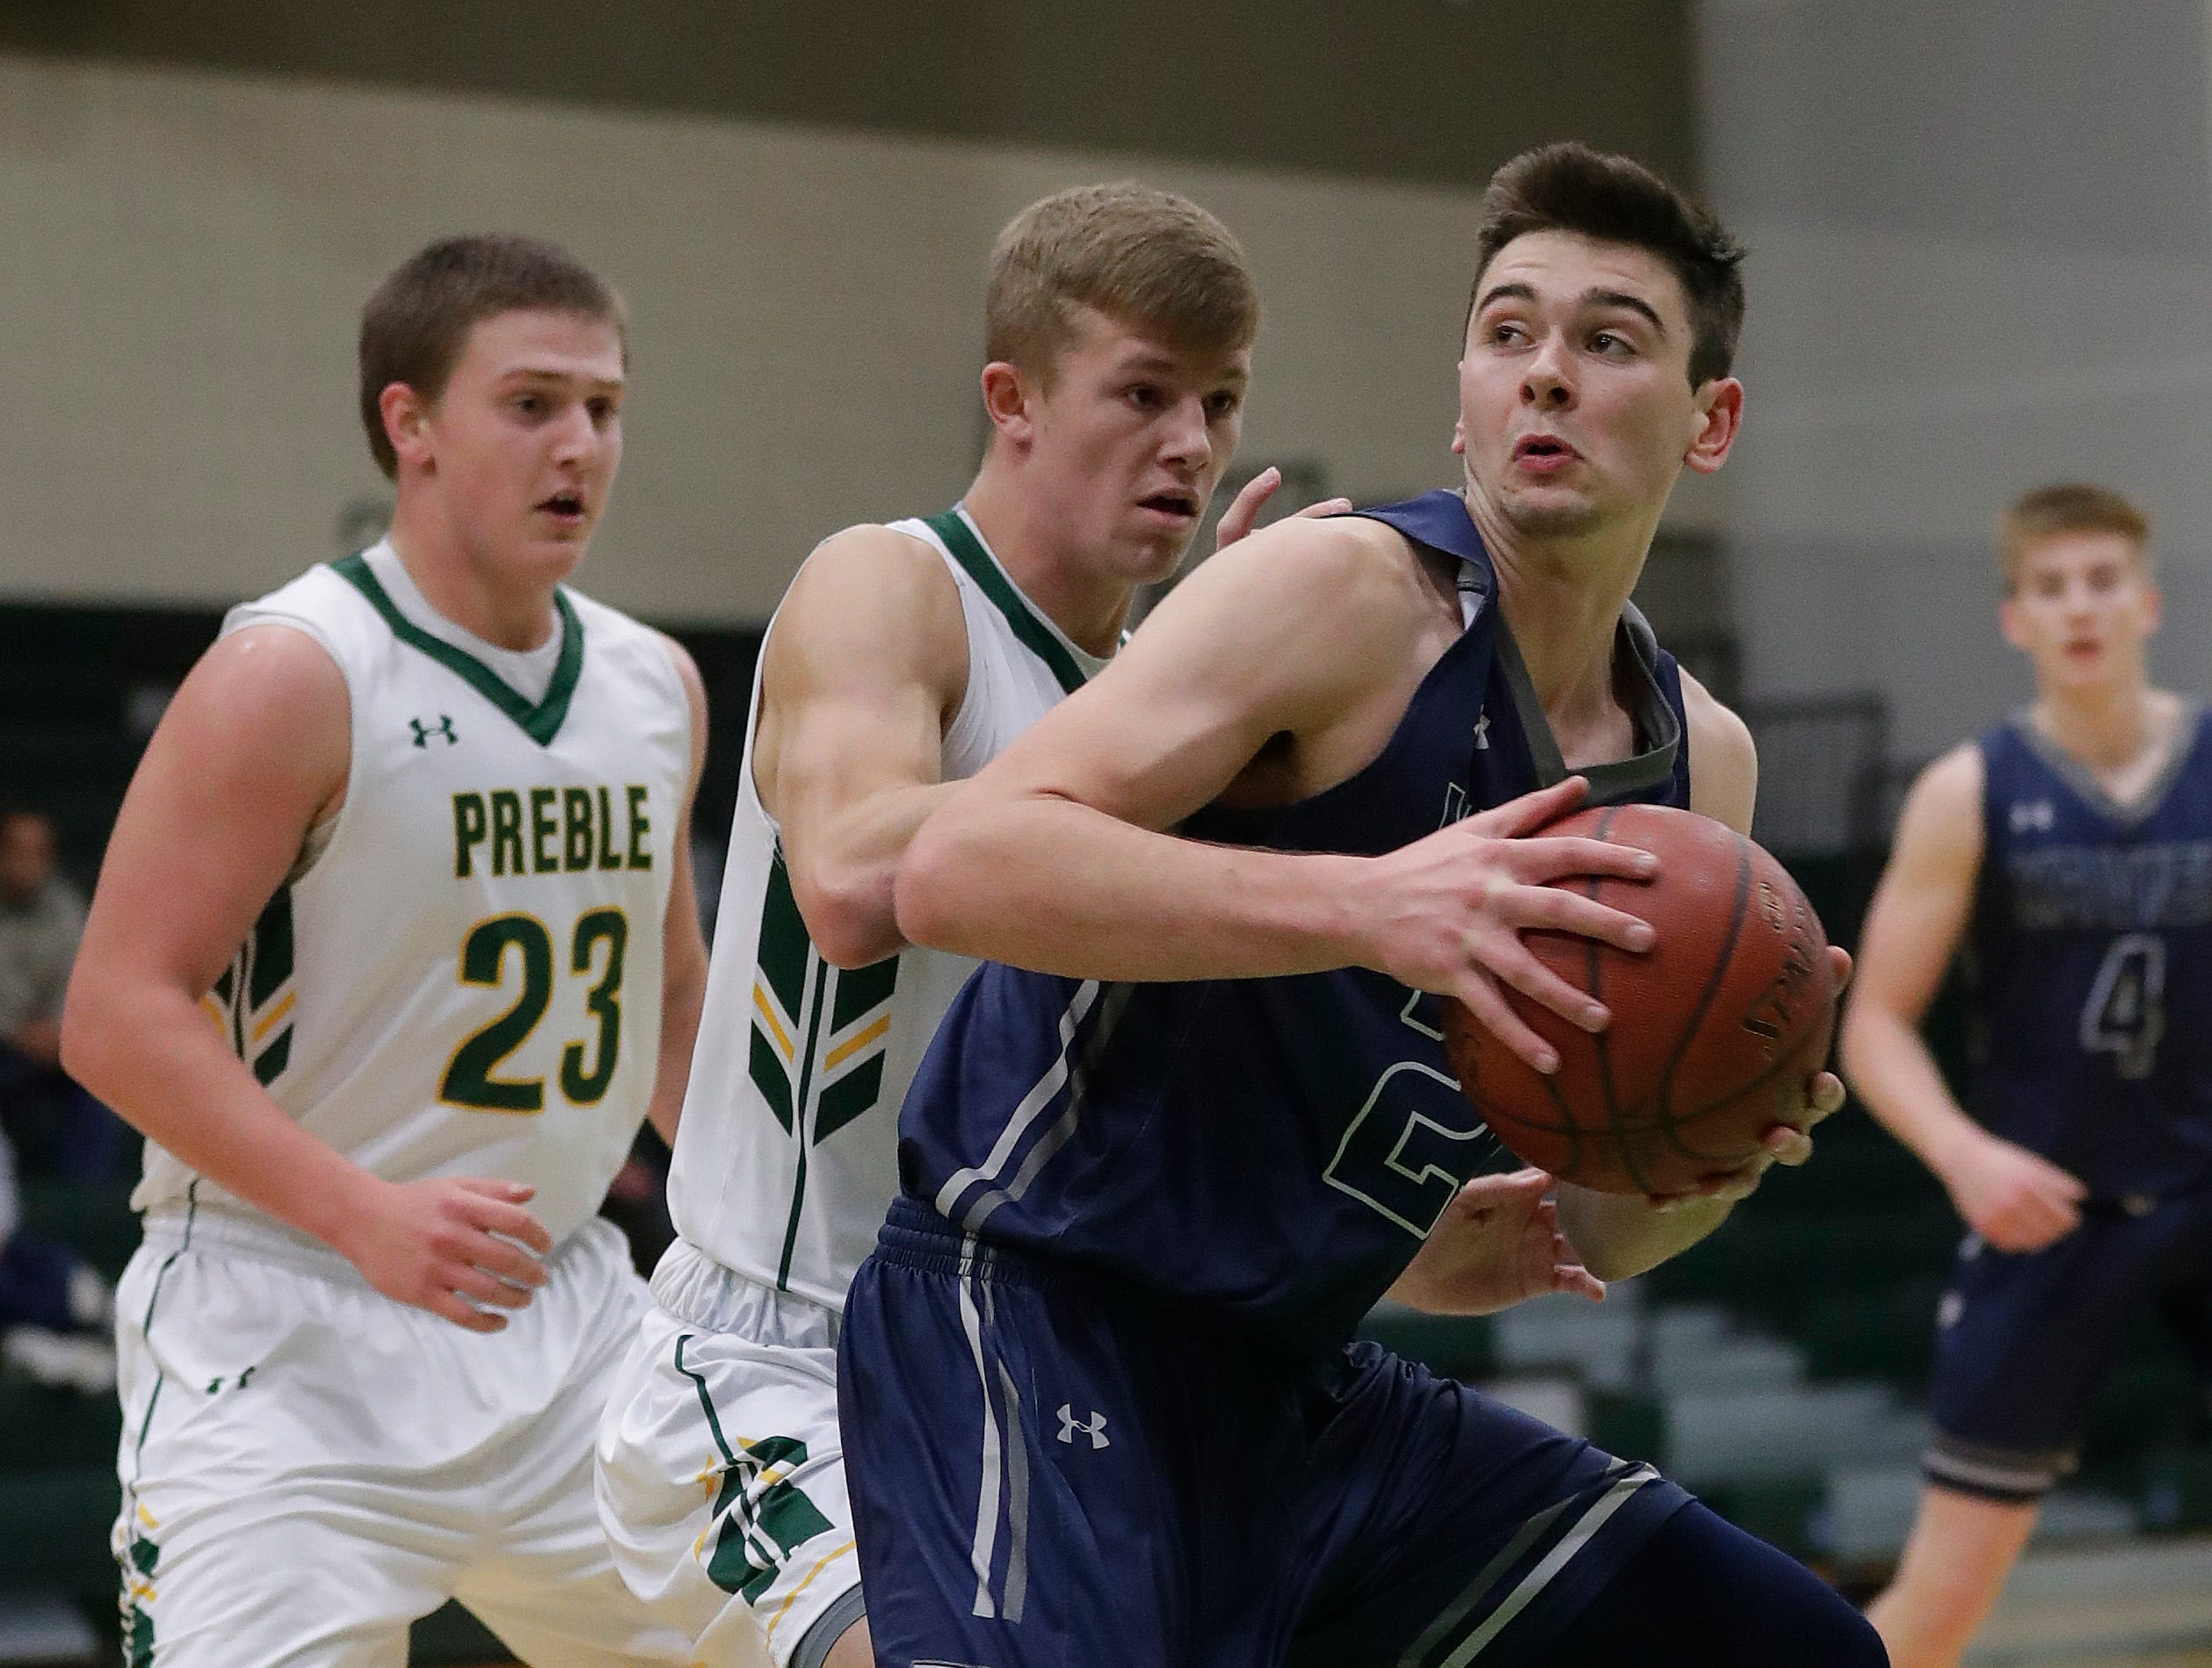 Xavier High School's Nick Otto spins down low against Preble Thursday, November 29, 2018 at Preble High School in Green Bay, Wis.